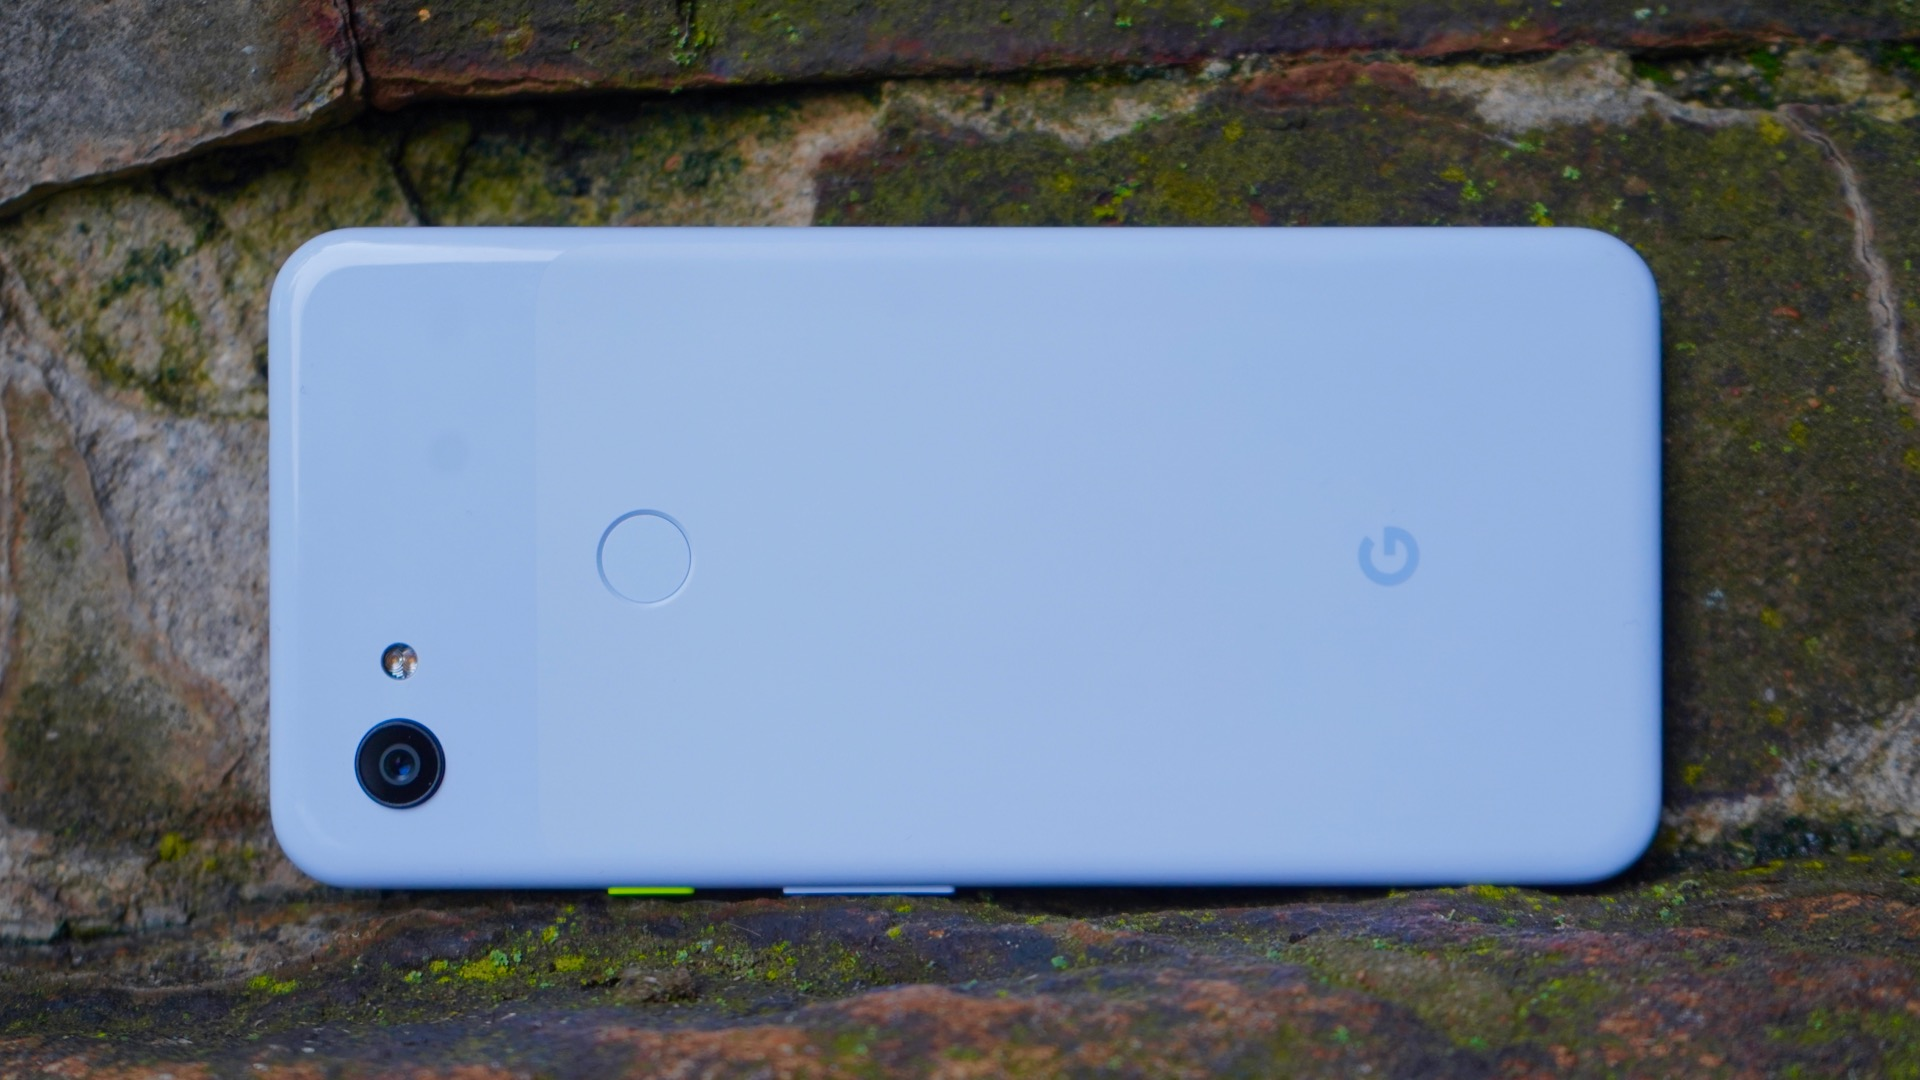 Google Pixel 3a XL camera review: Taking cues from the best